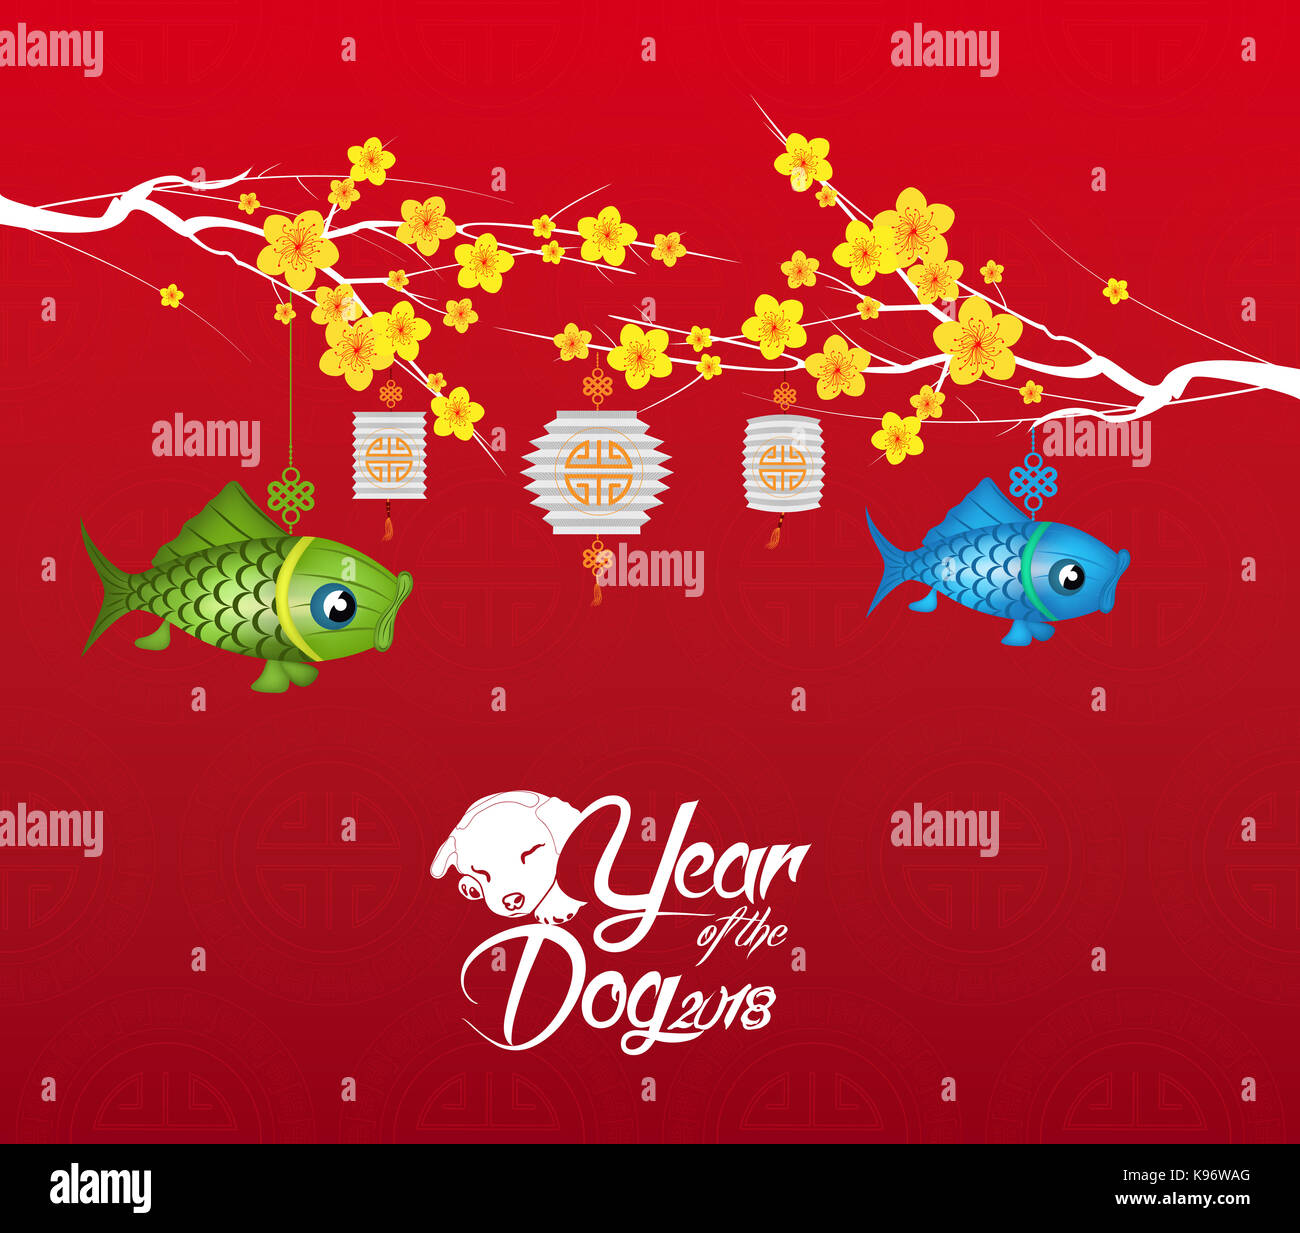 chinese new year 2018 blossom background year of the dog